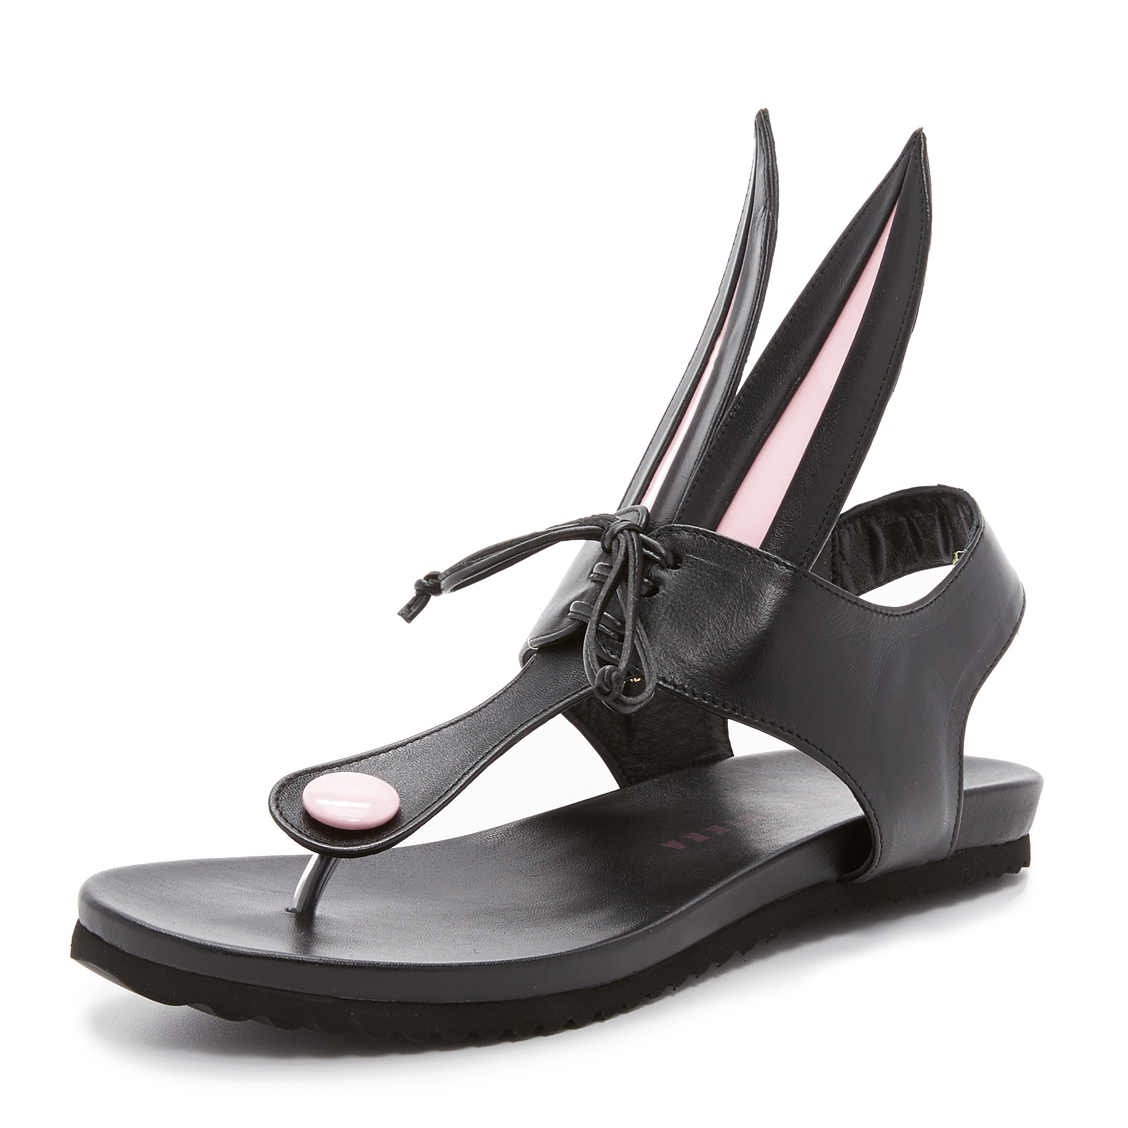 Leather sandals $291